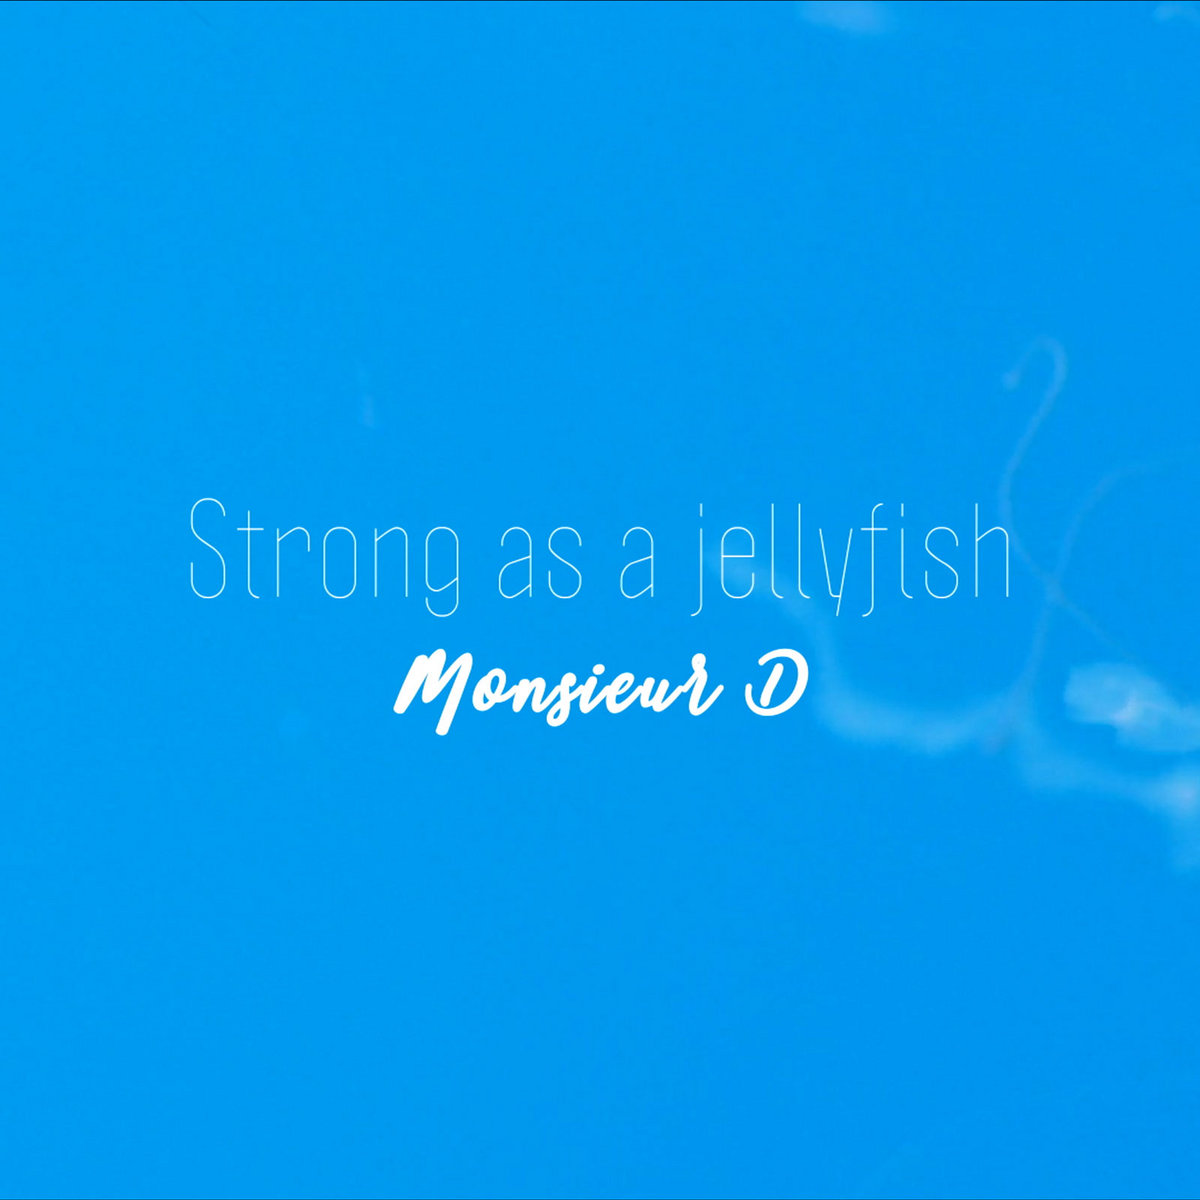 Strong a as Jellyfish by Monsieur D